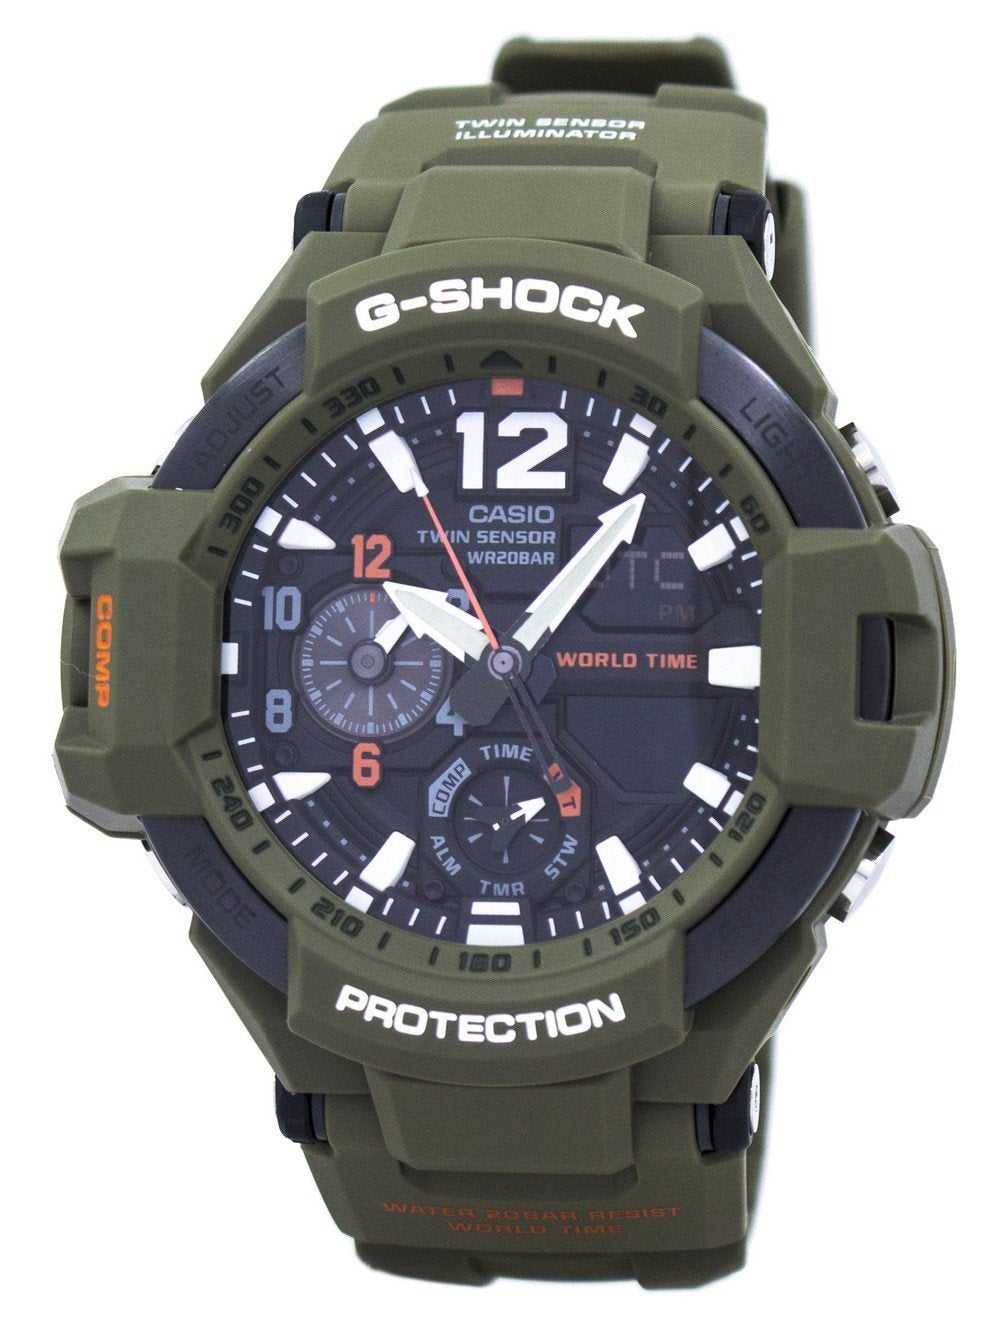 Casio G-Shock Gravitymaster Analog Digital Twin Sensor World Time GA-1100KH-3A GA1100KH-3A Men's Watch